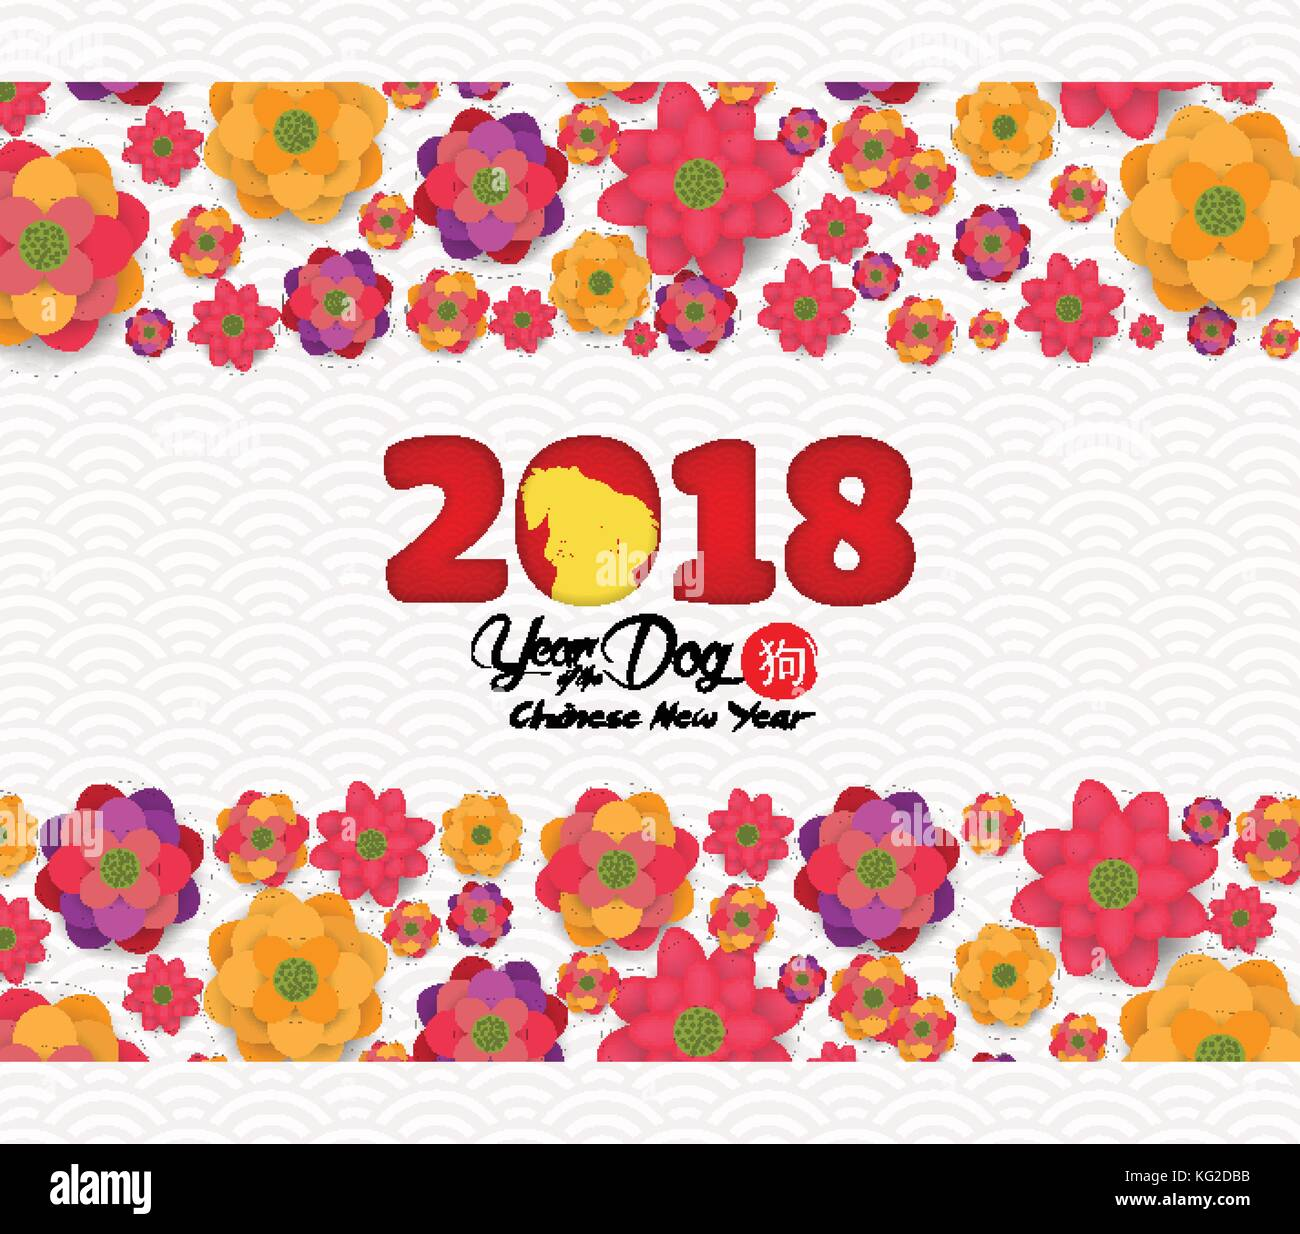 2018 Chinese New Year Greeting Card Paper Cut With Yellow Dog And